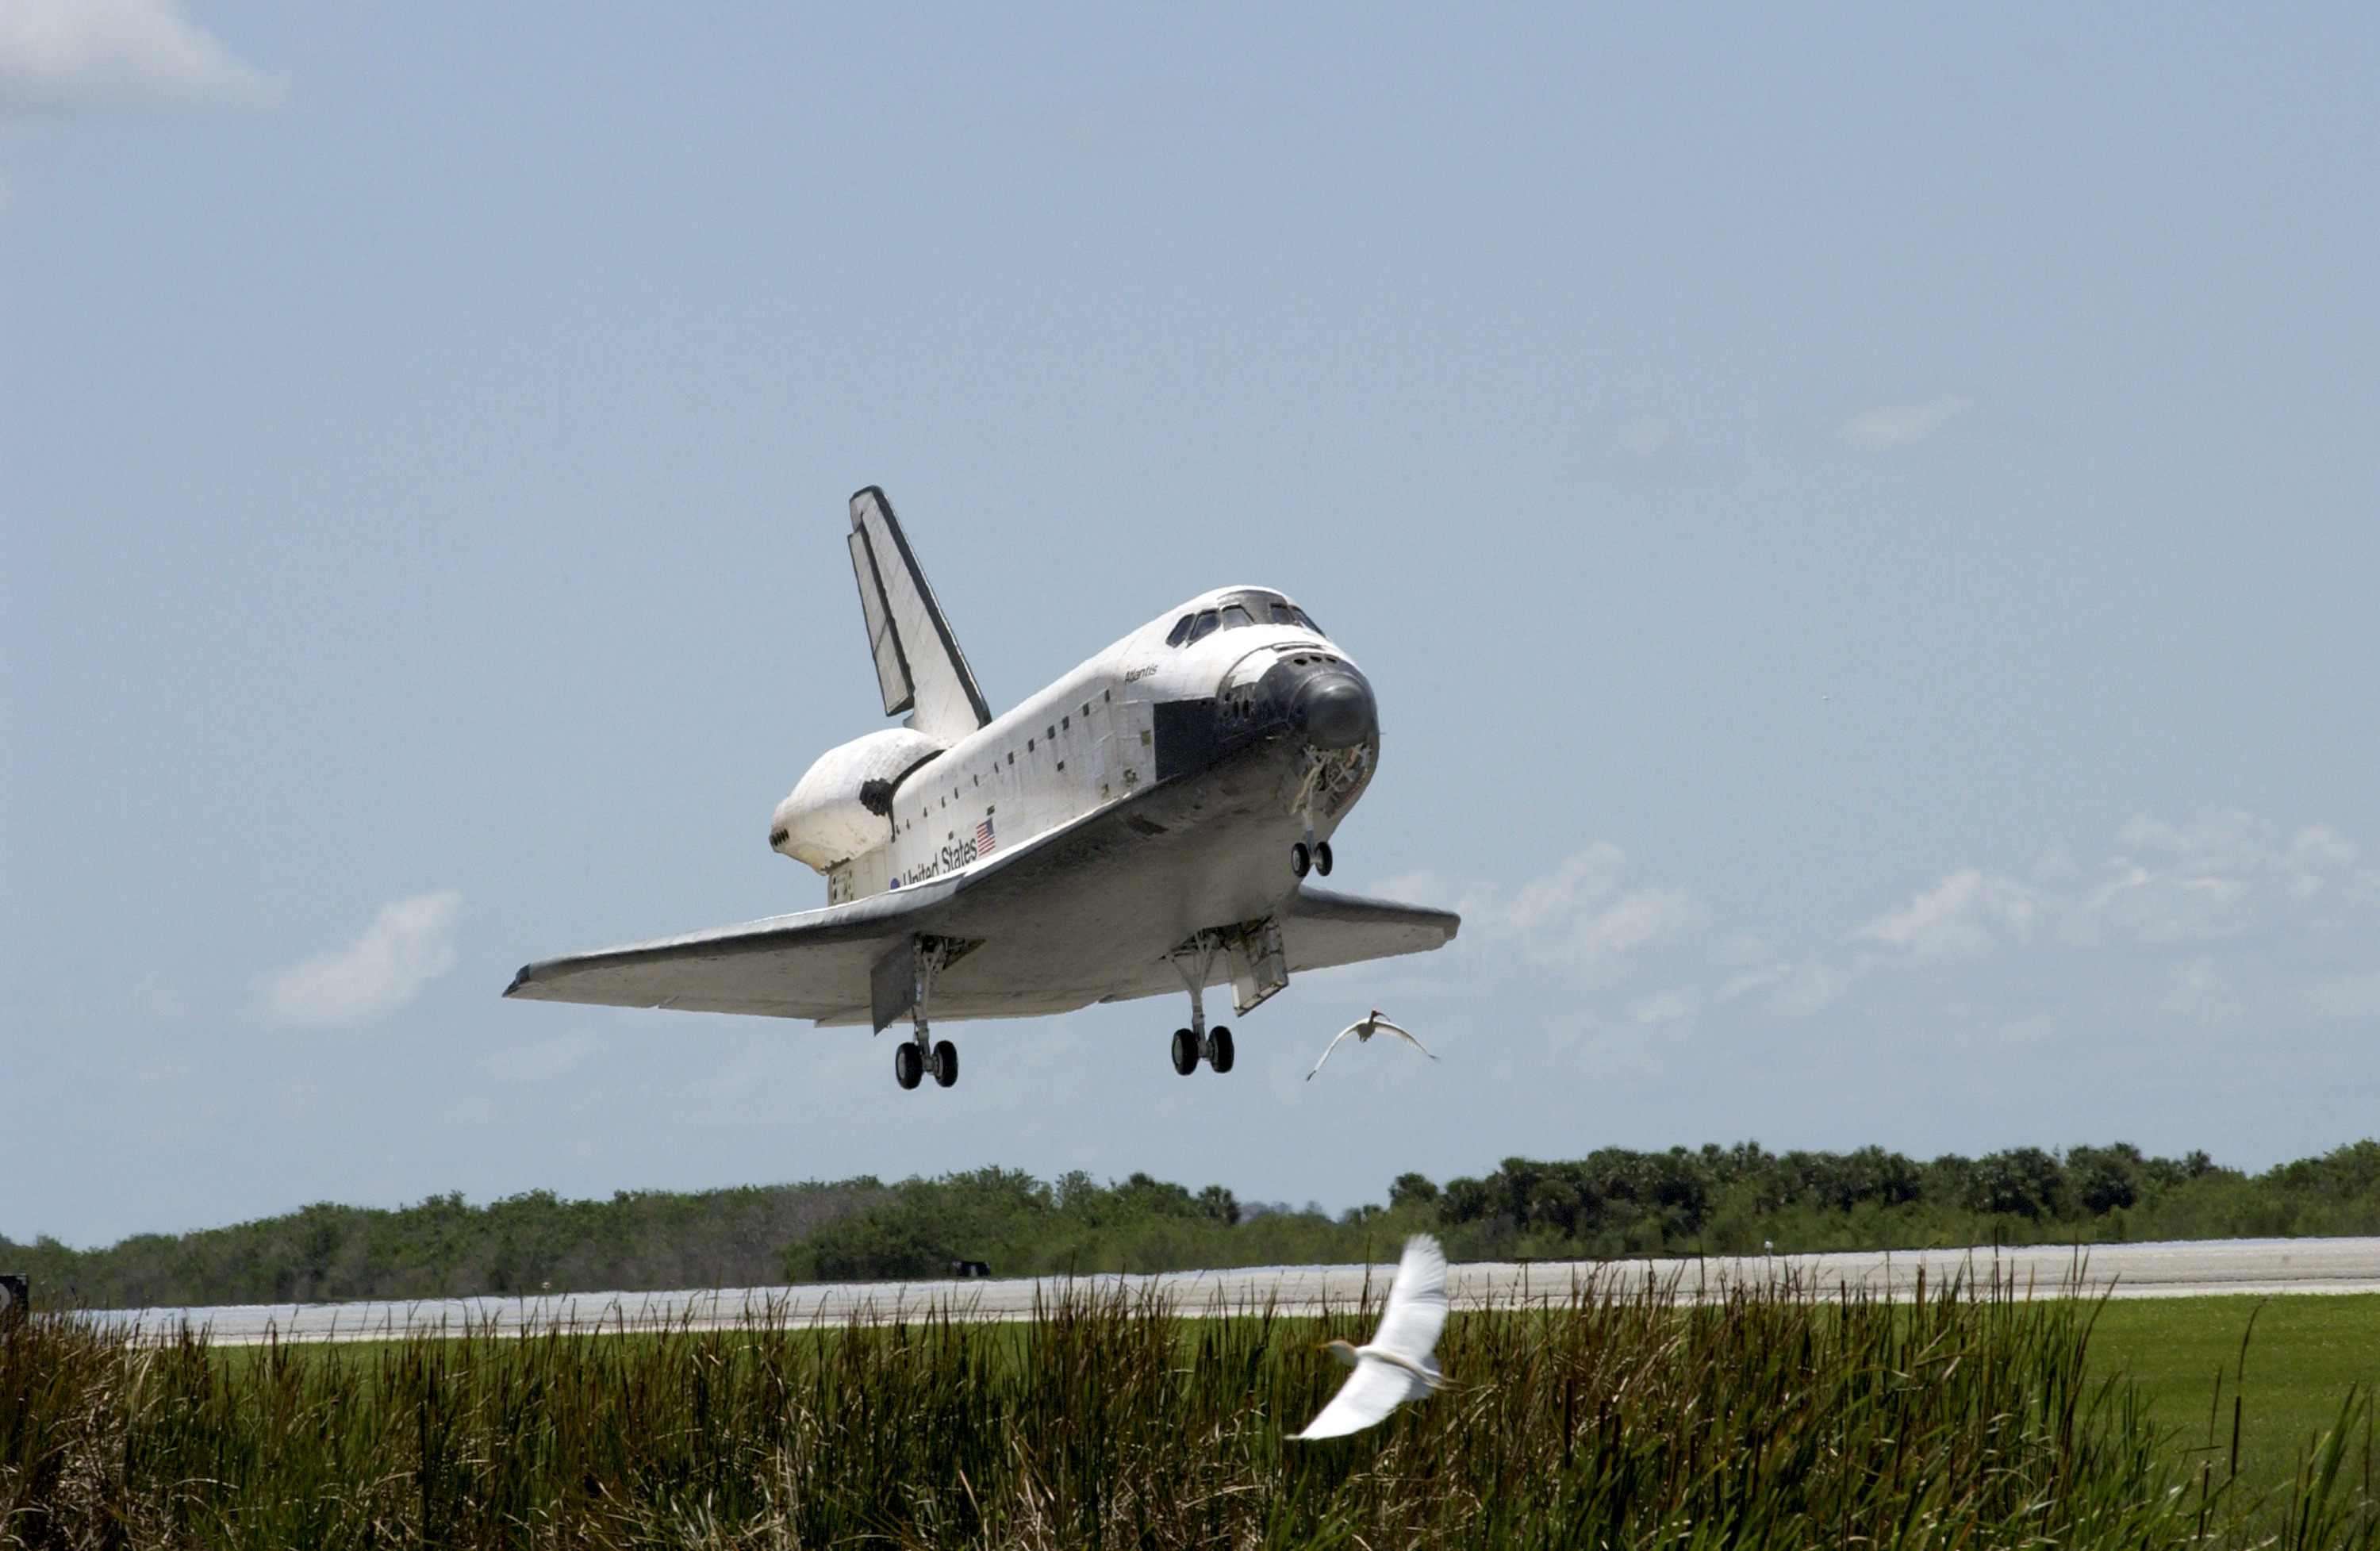 usa space shuttle program - photo #30